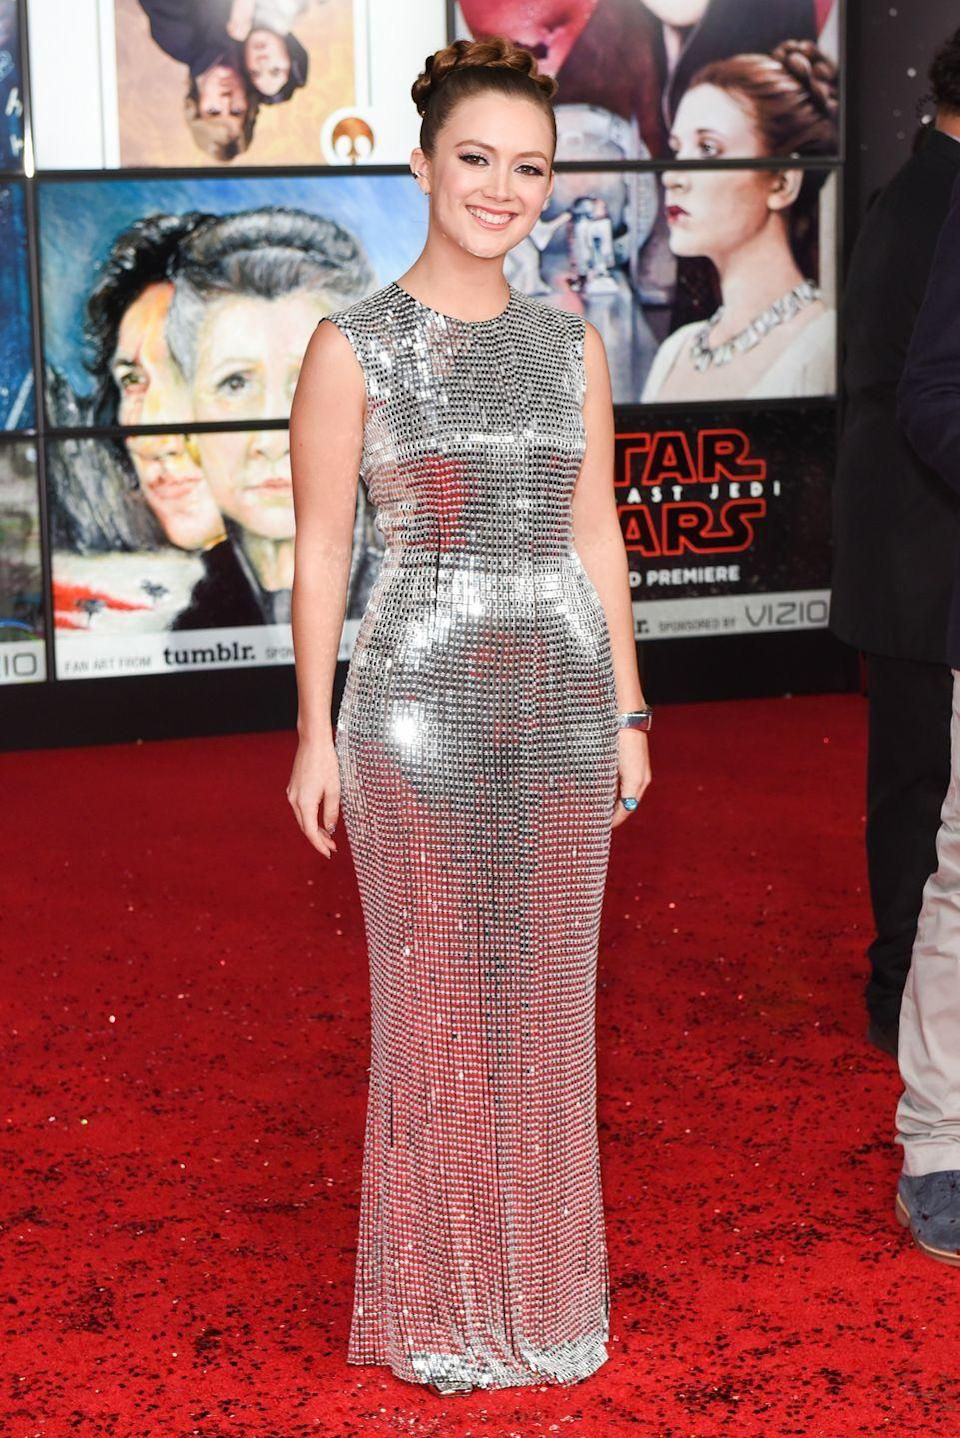 <p>Carrie's daughter, Billie Lourd, has followed in her mother's footsteps by embarking on a career in acting. Here, Billie attends the premiere of her mother's last <em>Star Wars </em>film. </p>